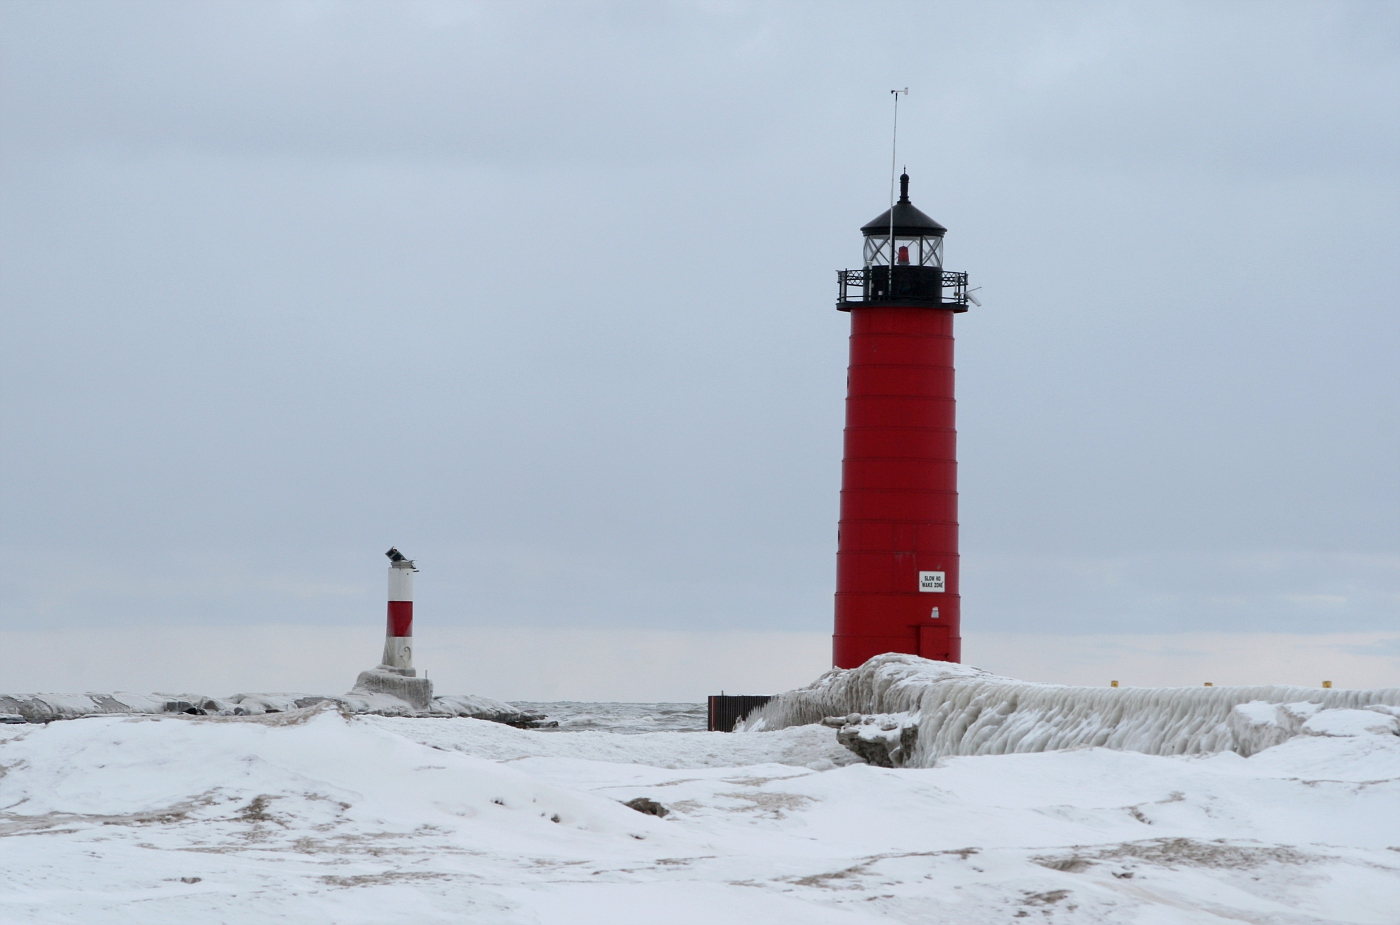 Kenosha Lighthouse and Harbor Marker 2